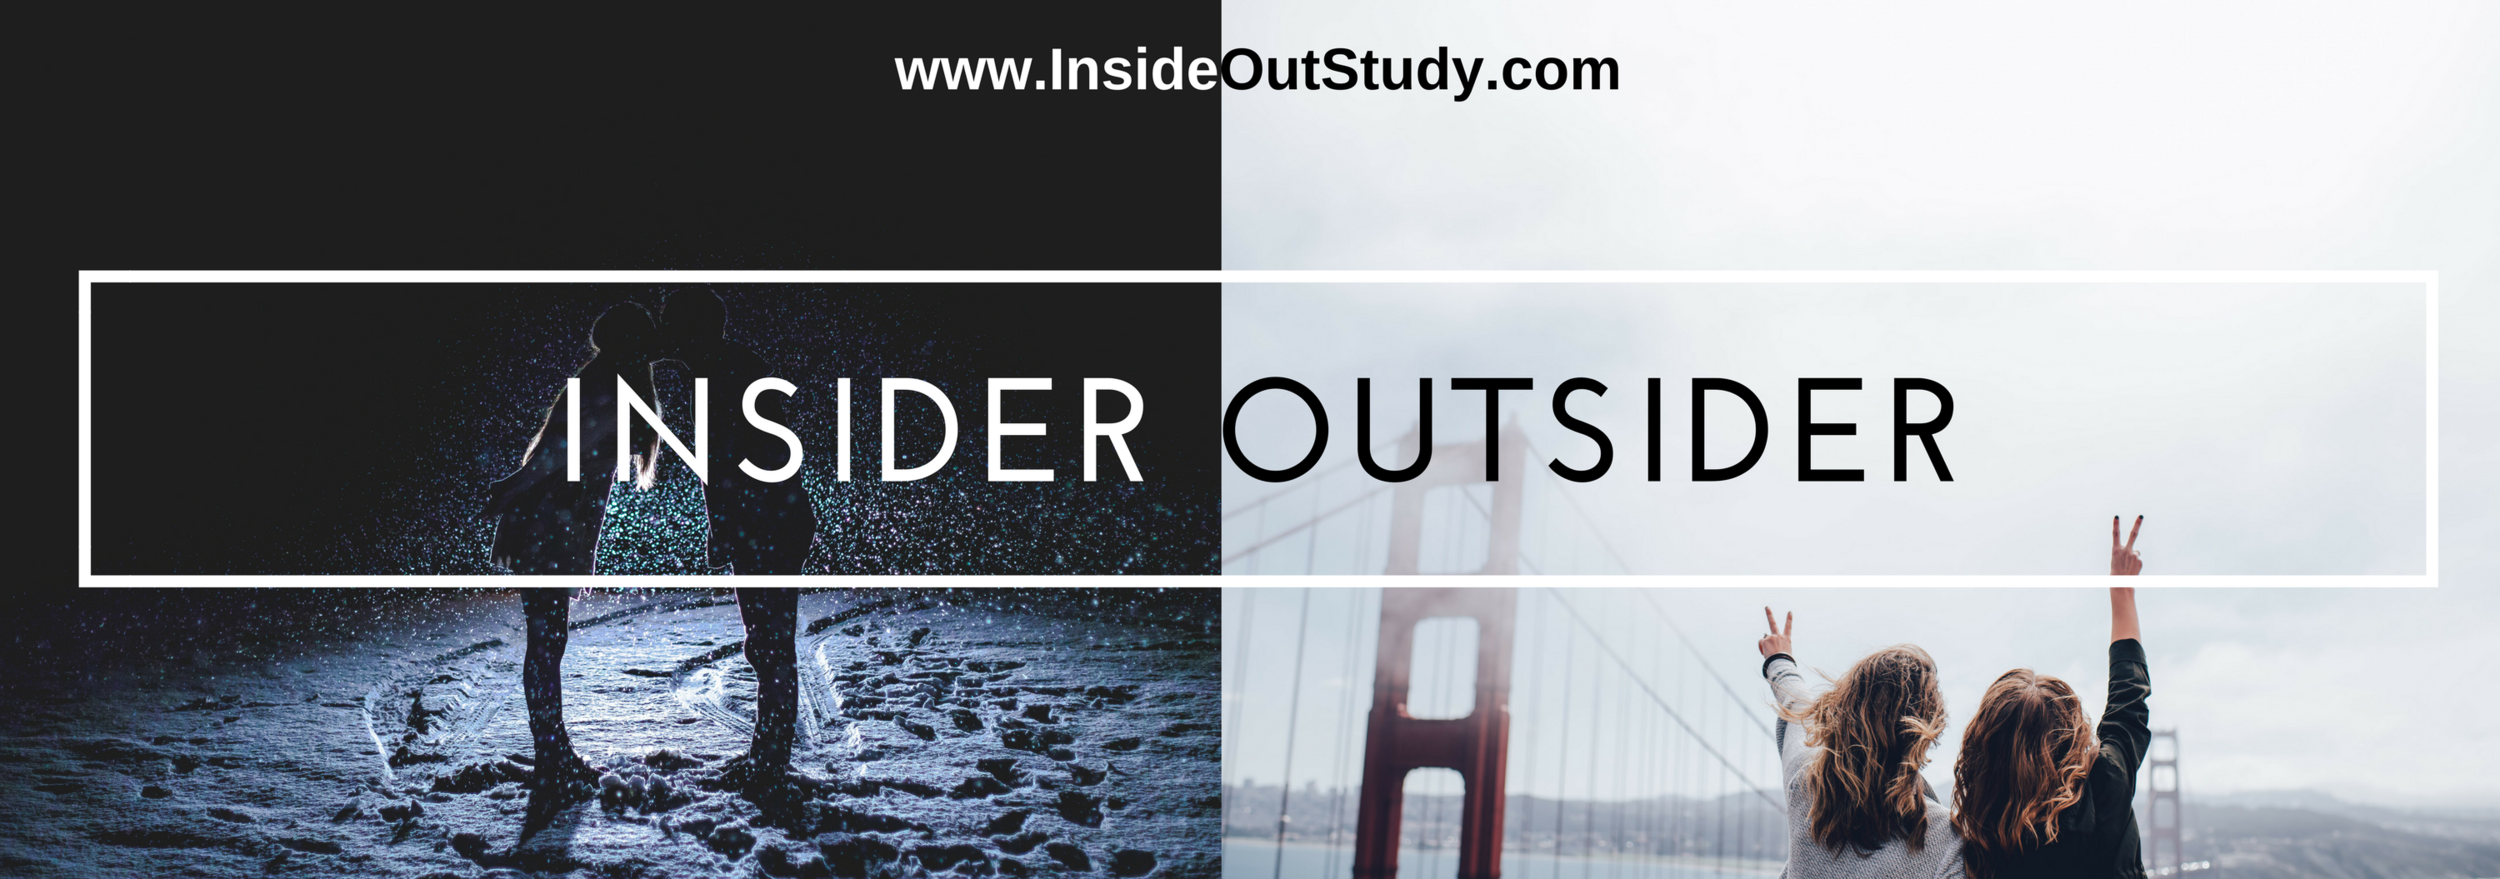 Insider Outsider Header.png